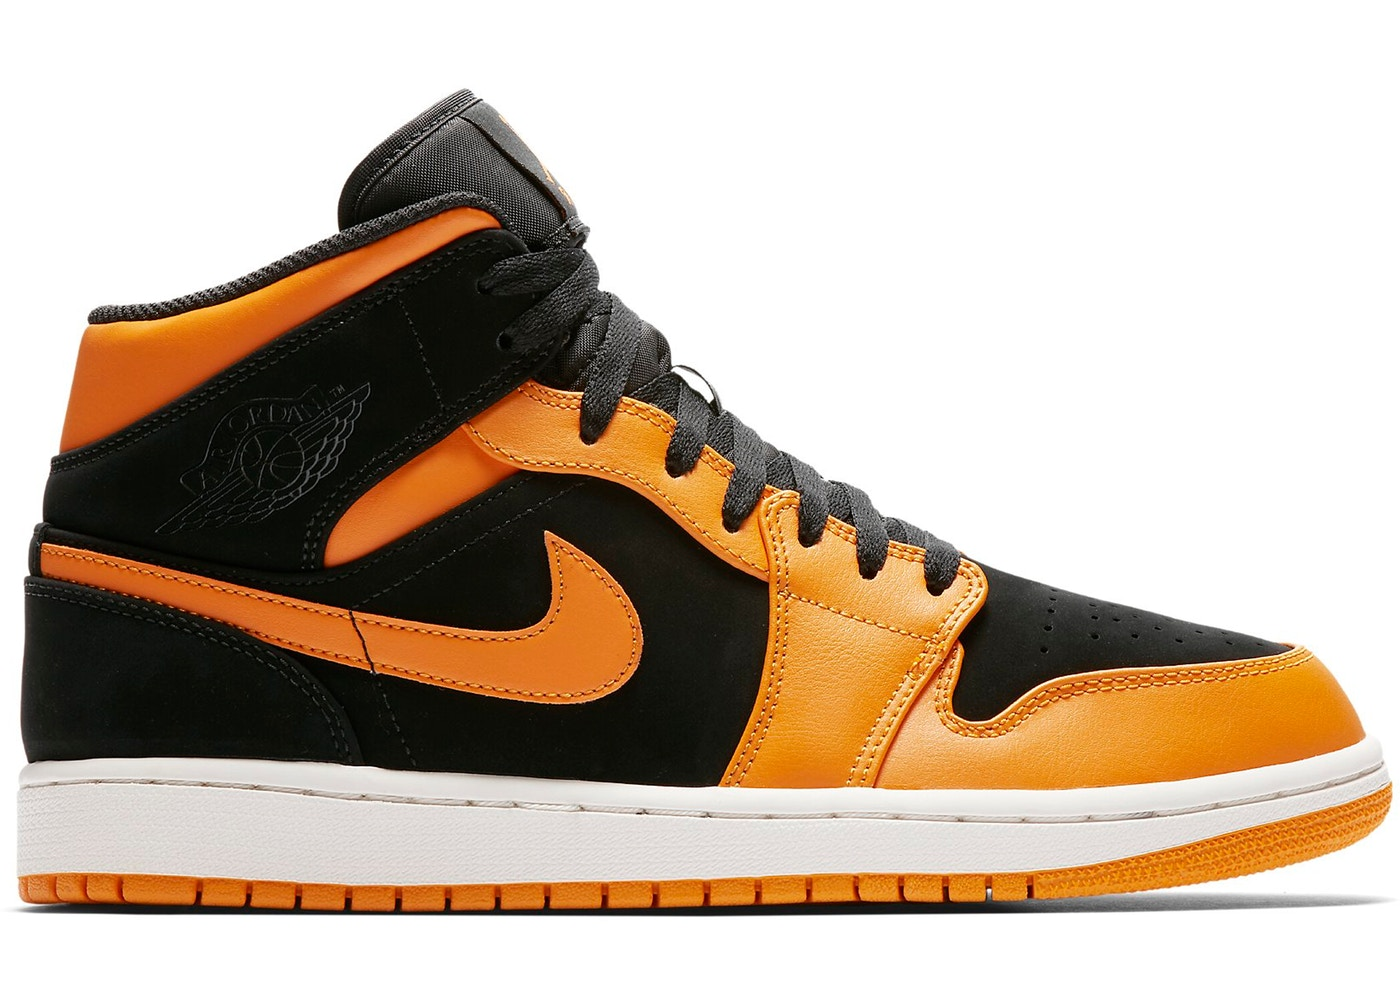 Jordan 1 Mid Black Orange Peel